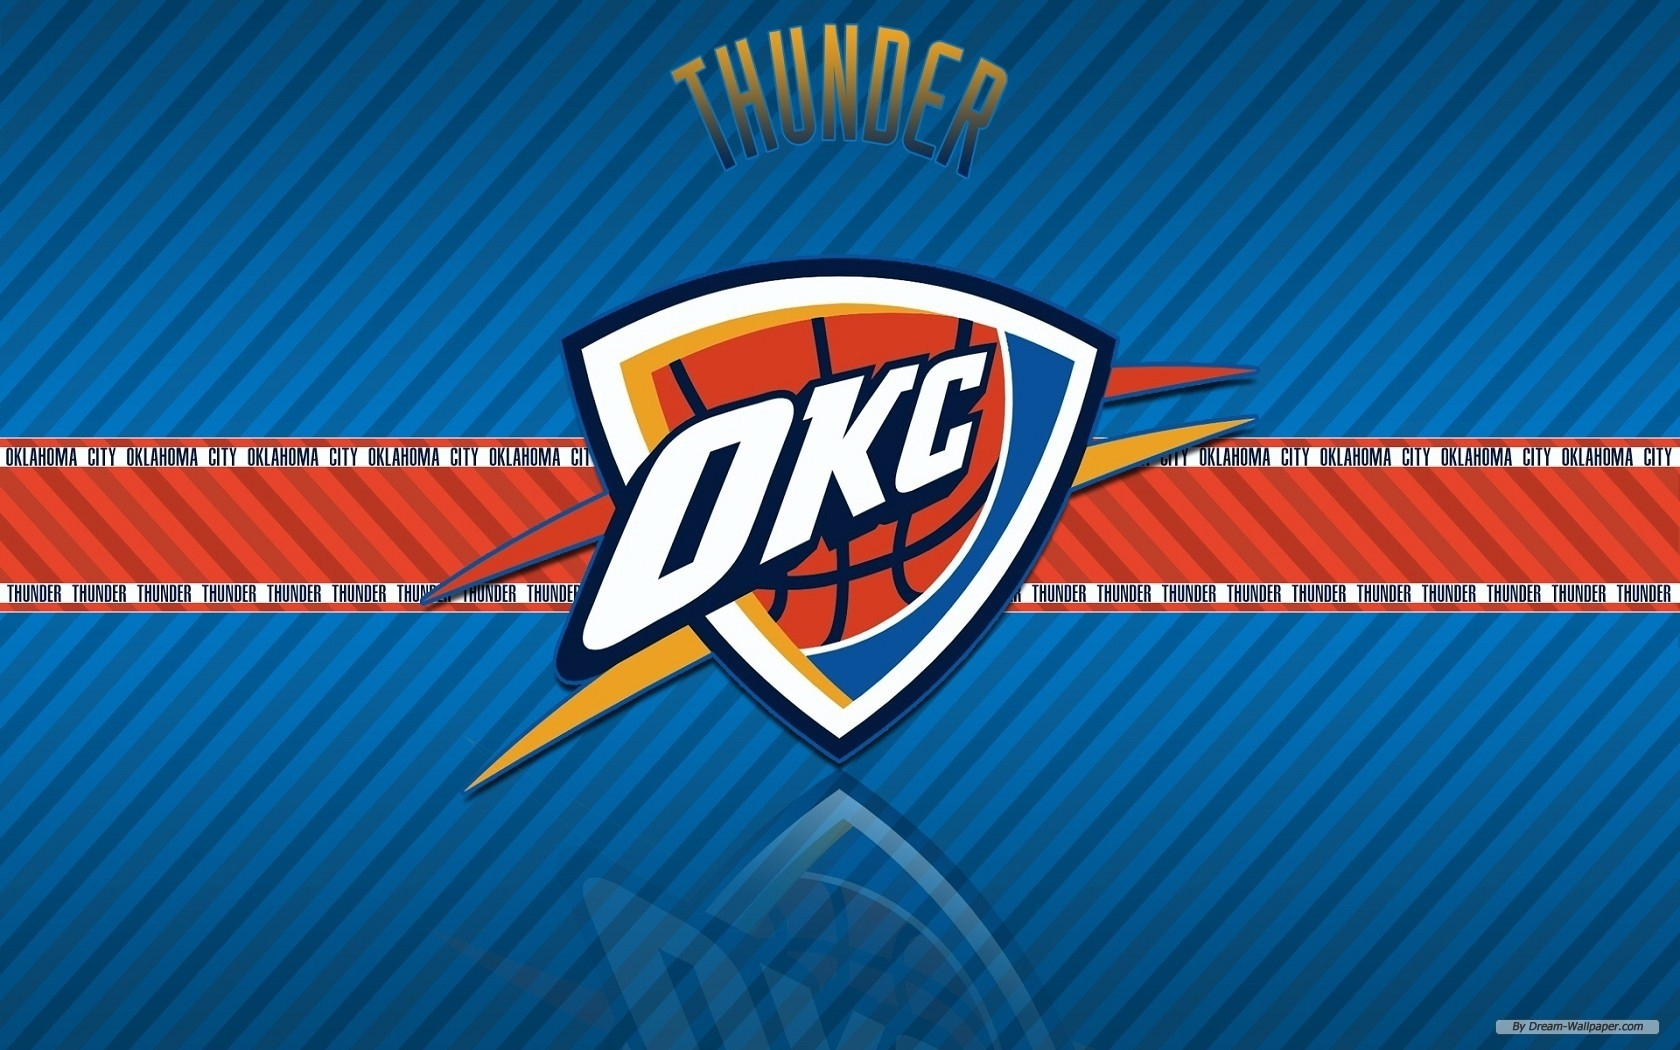 Title : free wallpaper - free sport wallpaper - nba teams logo 2 wallpaper. Dimension : 1680 x 1050. File Type : JPG/JPEG